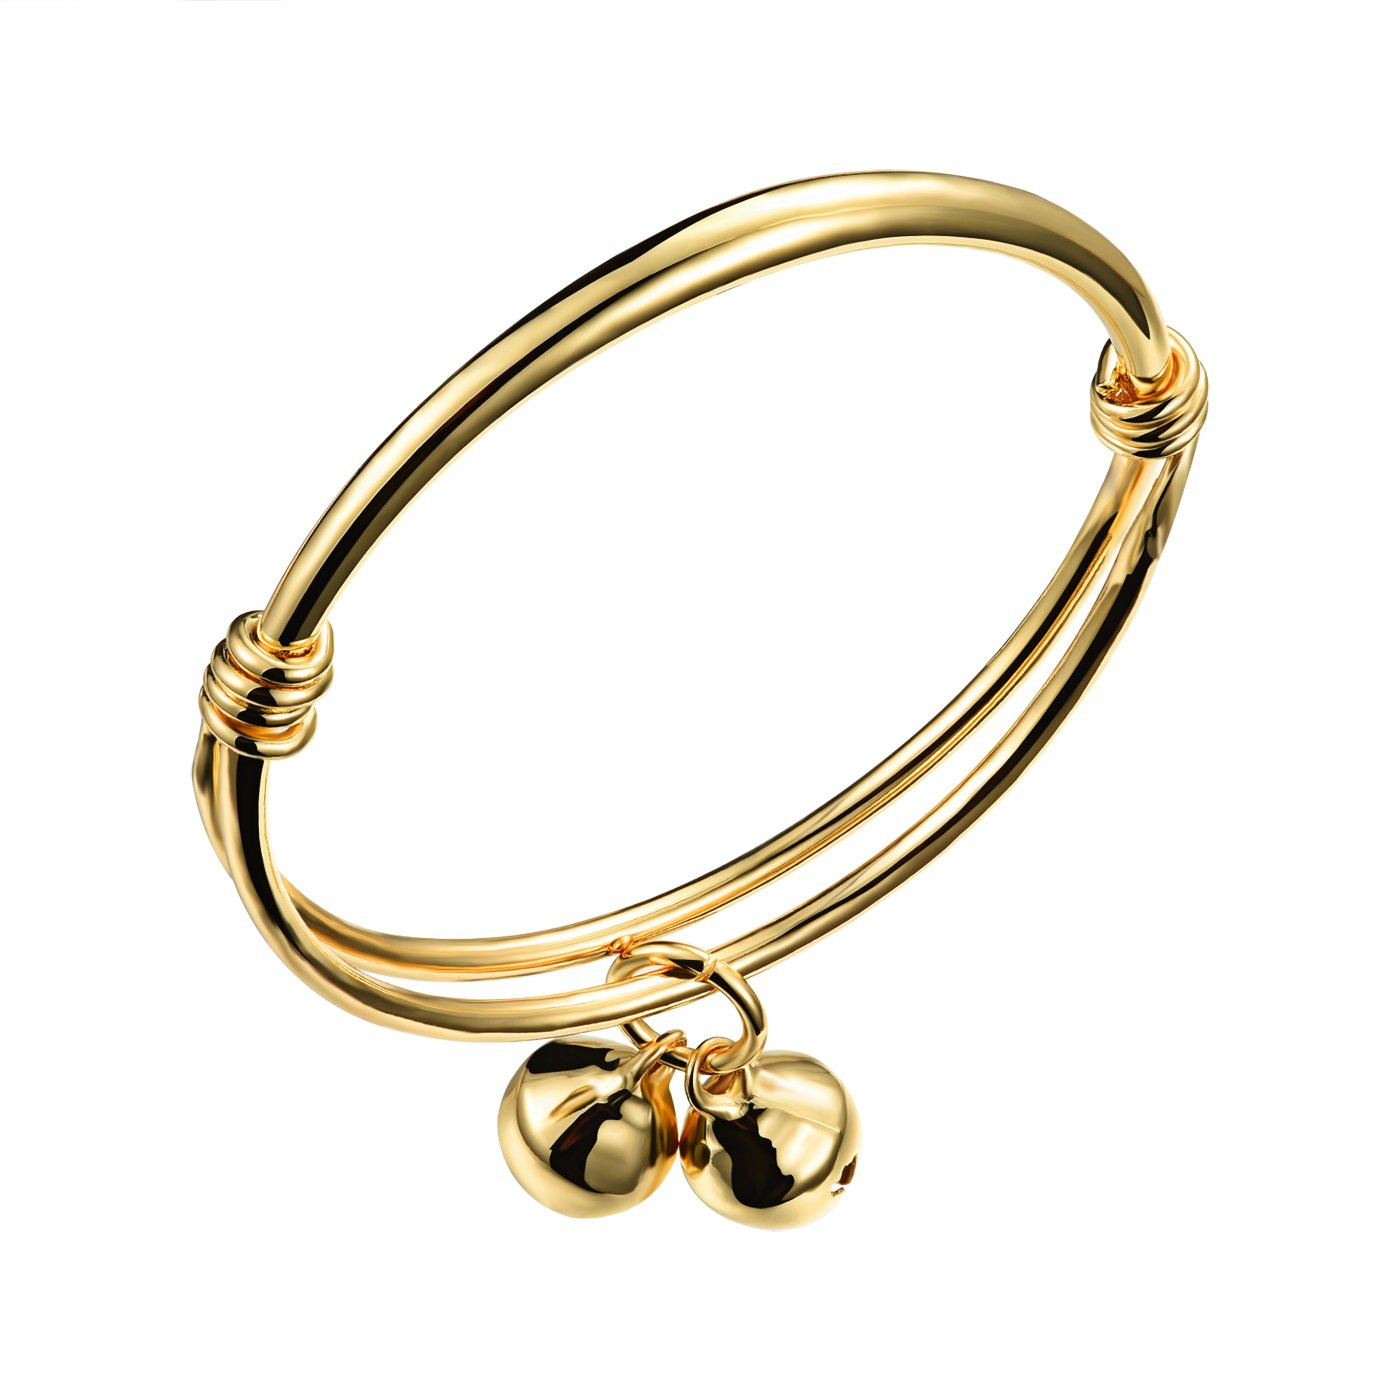 OPK Jewelry 18k Gold Plated Expendable Bangle Bracelet with Two Bells for Unisex Baby, High Polished